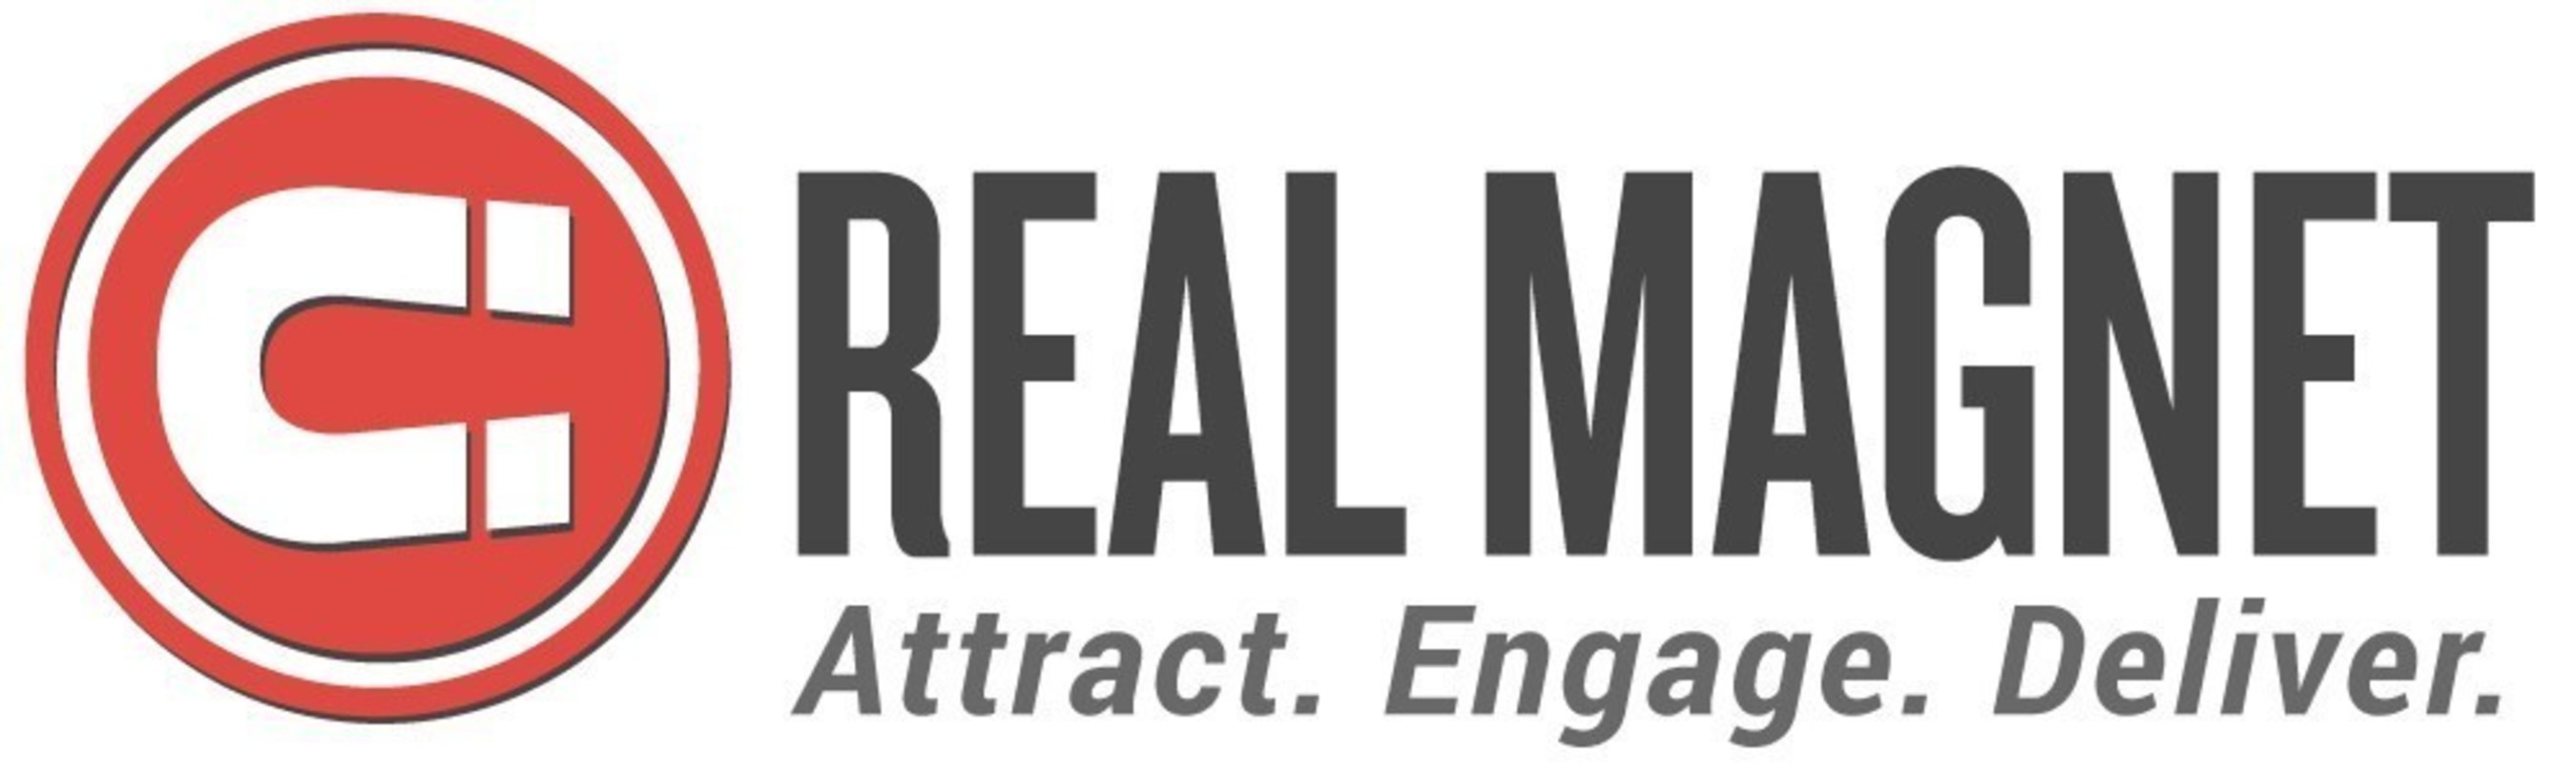 Real Magnet To Present Benefits Of Marketing Automation At Holiday Showcase For Association Forum